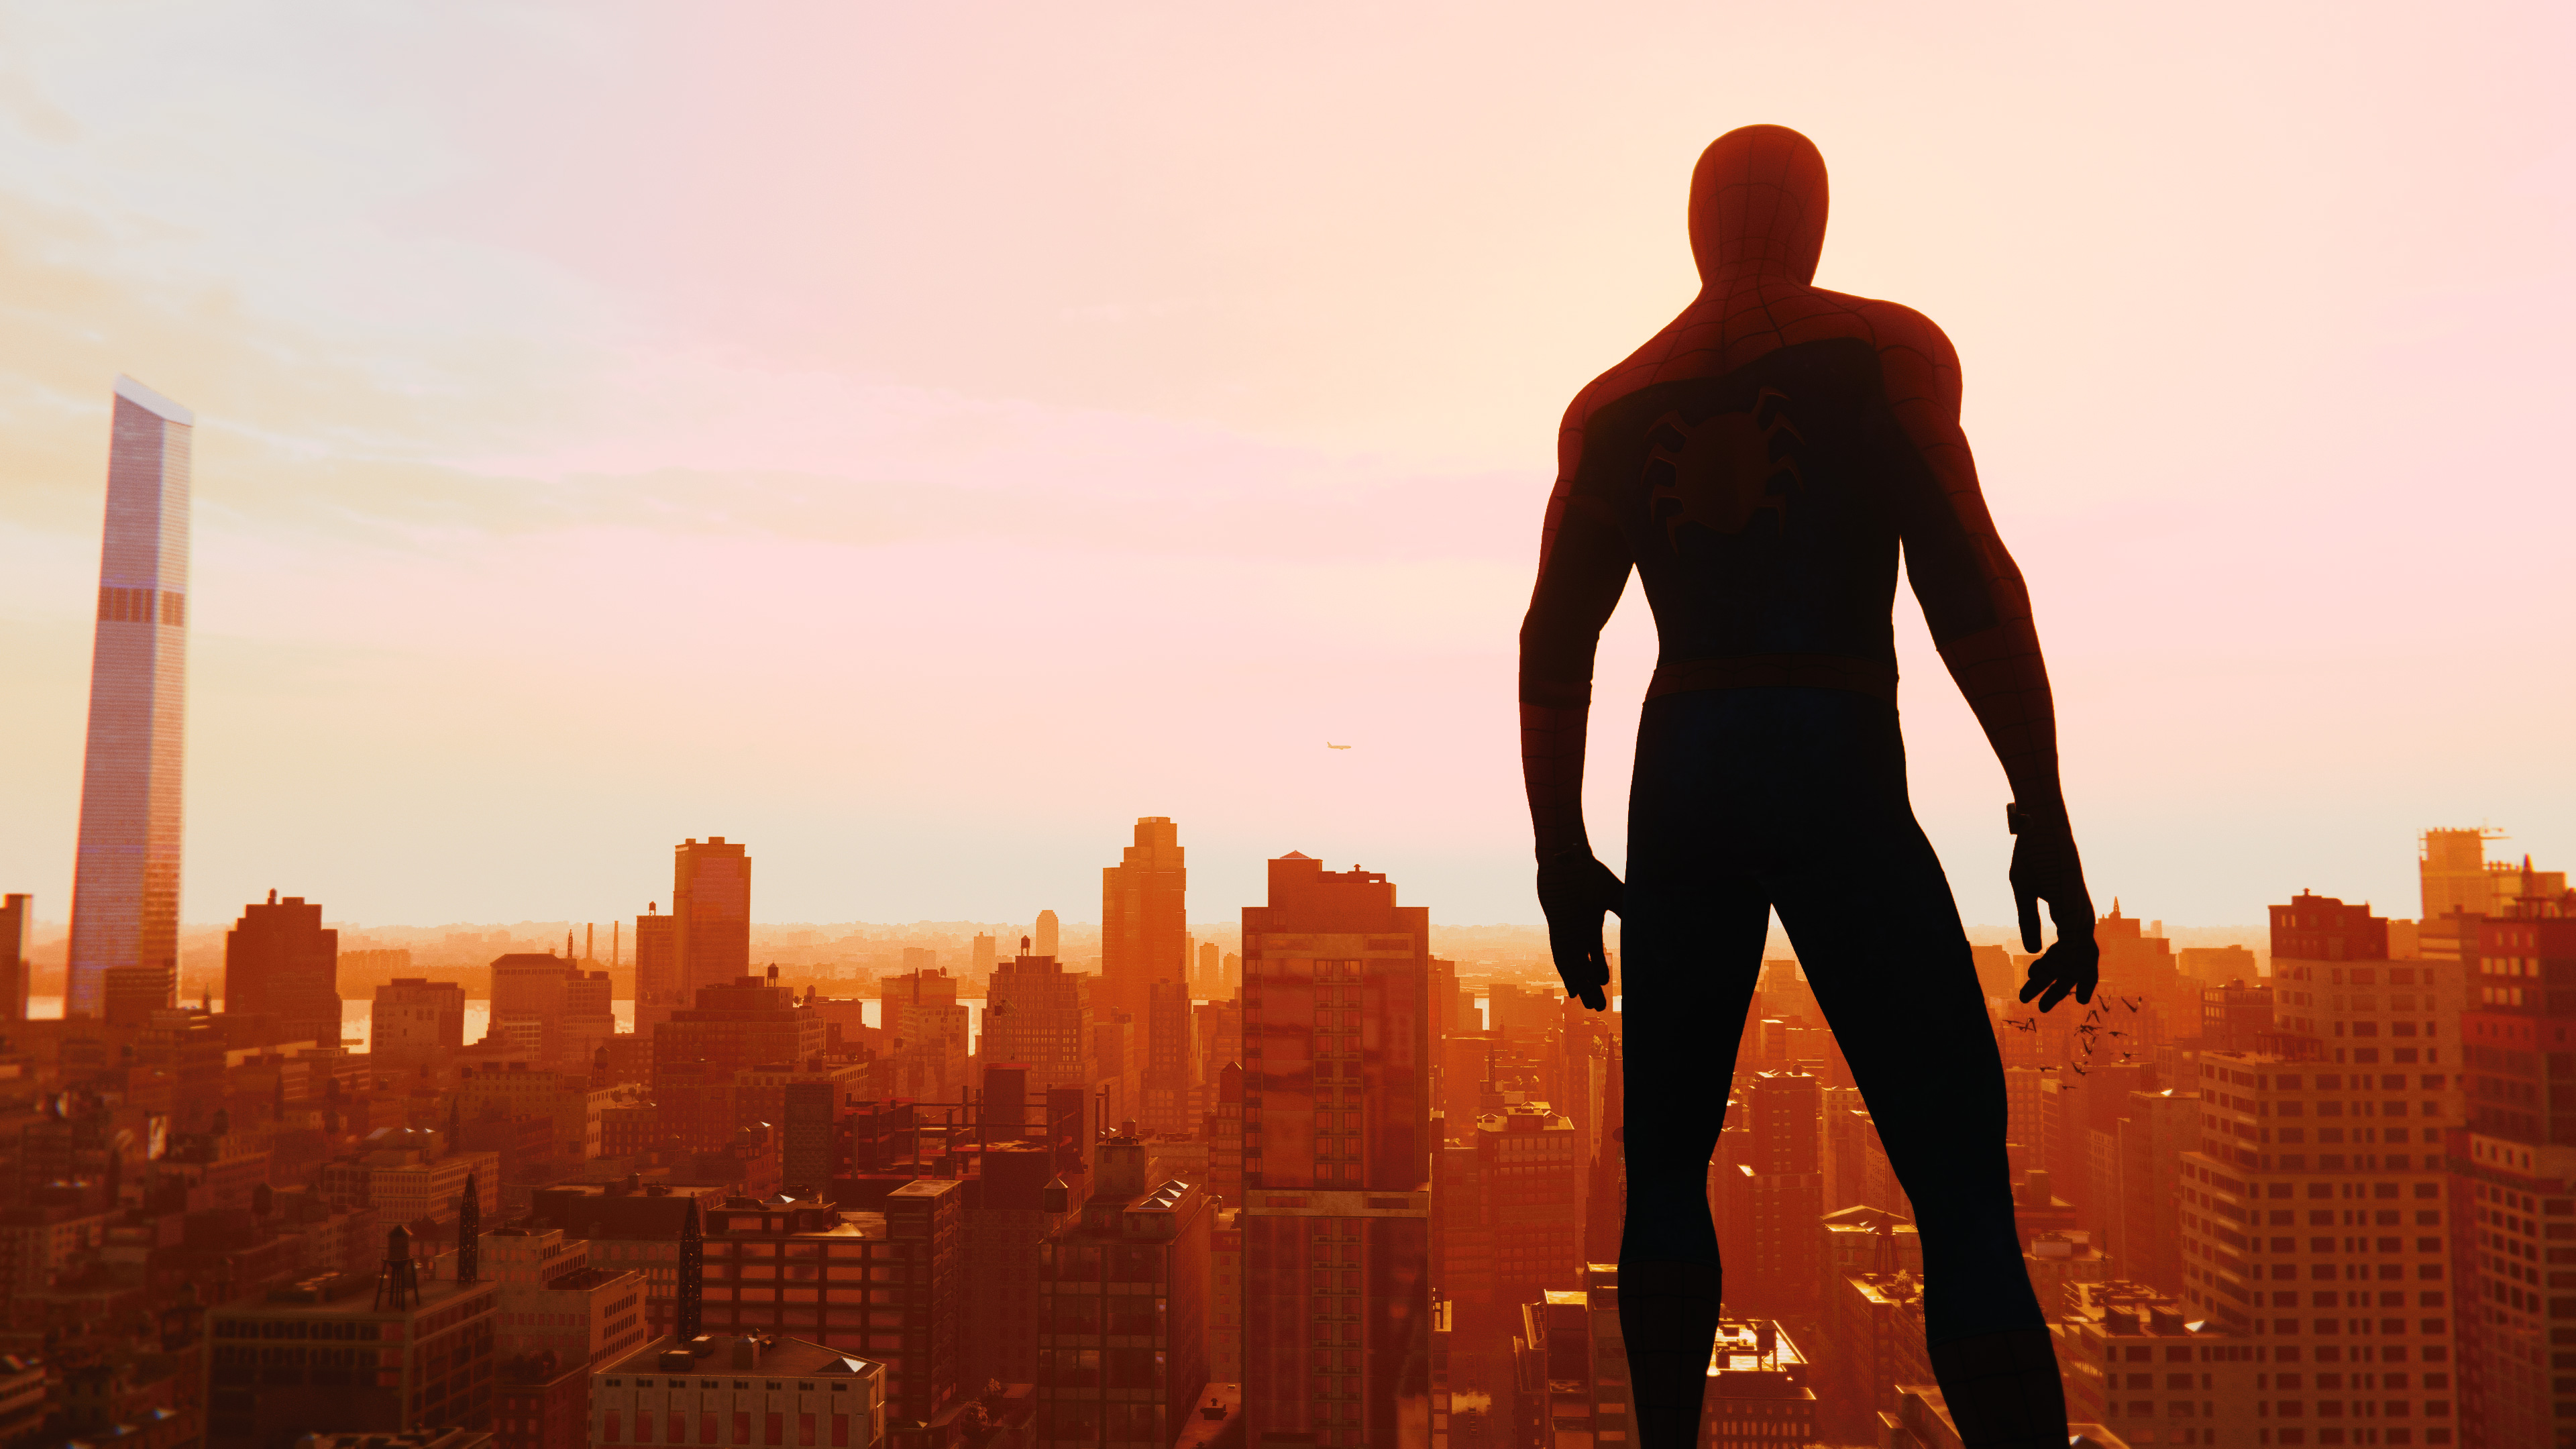 spiderman ps4 skyline 4k 1538343594 - Spiderman Ps4 Skyline 4k - superheroes wallpapers, spiderman wallpapers, spiderman ps4 wallpapers, reddit wallpapers, ps games wallpapers, hd-wallpapers, games wallpapers, 4k-wallpapers, 2018 games wallpapers